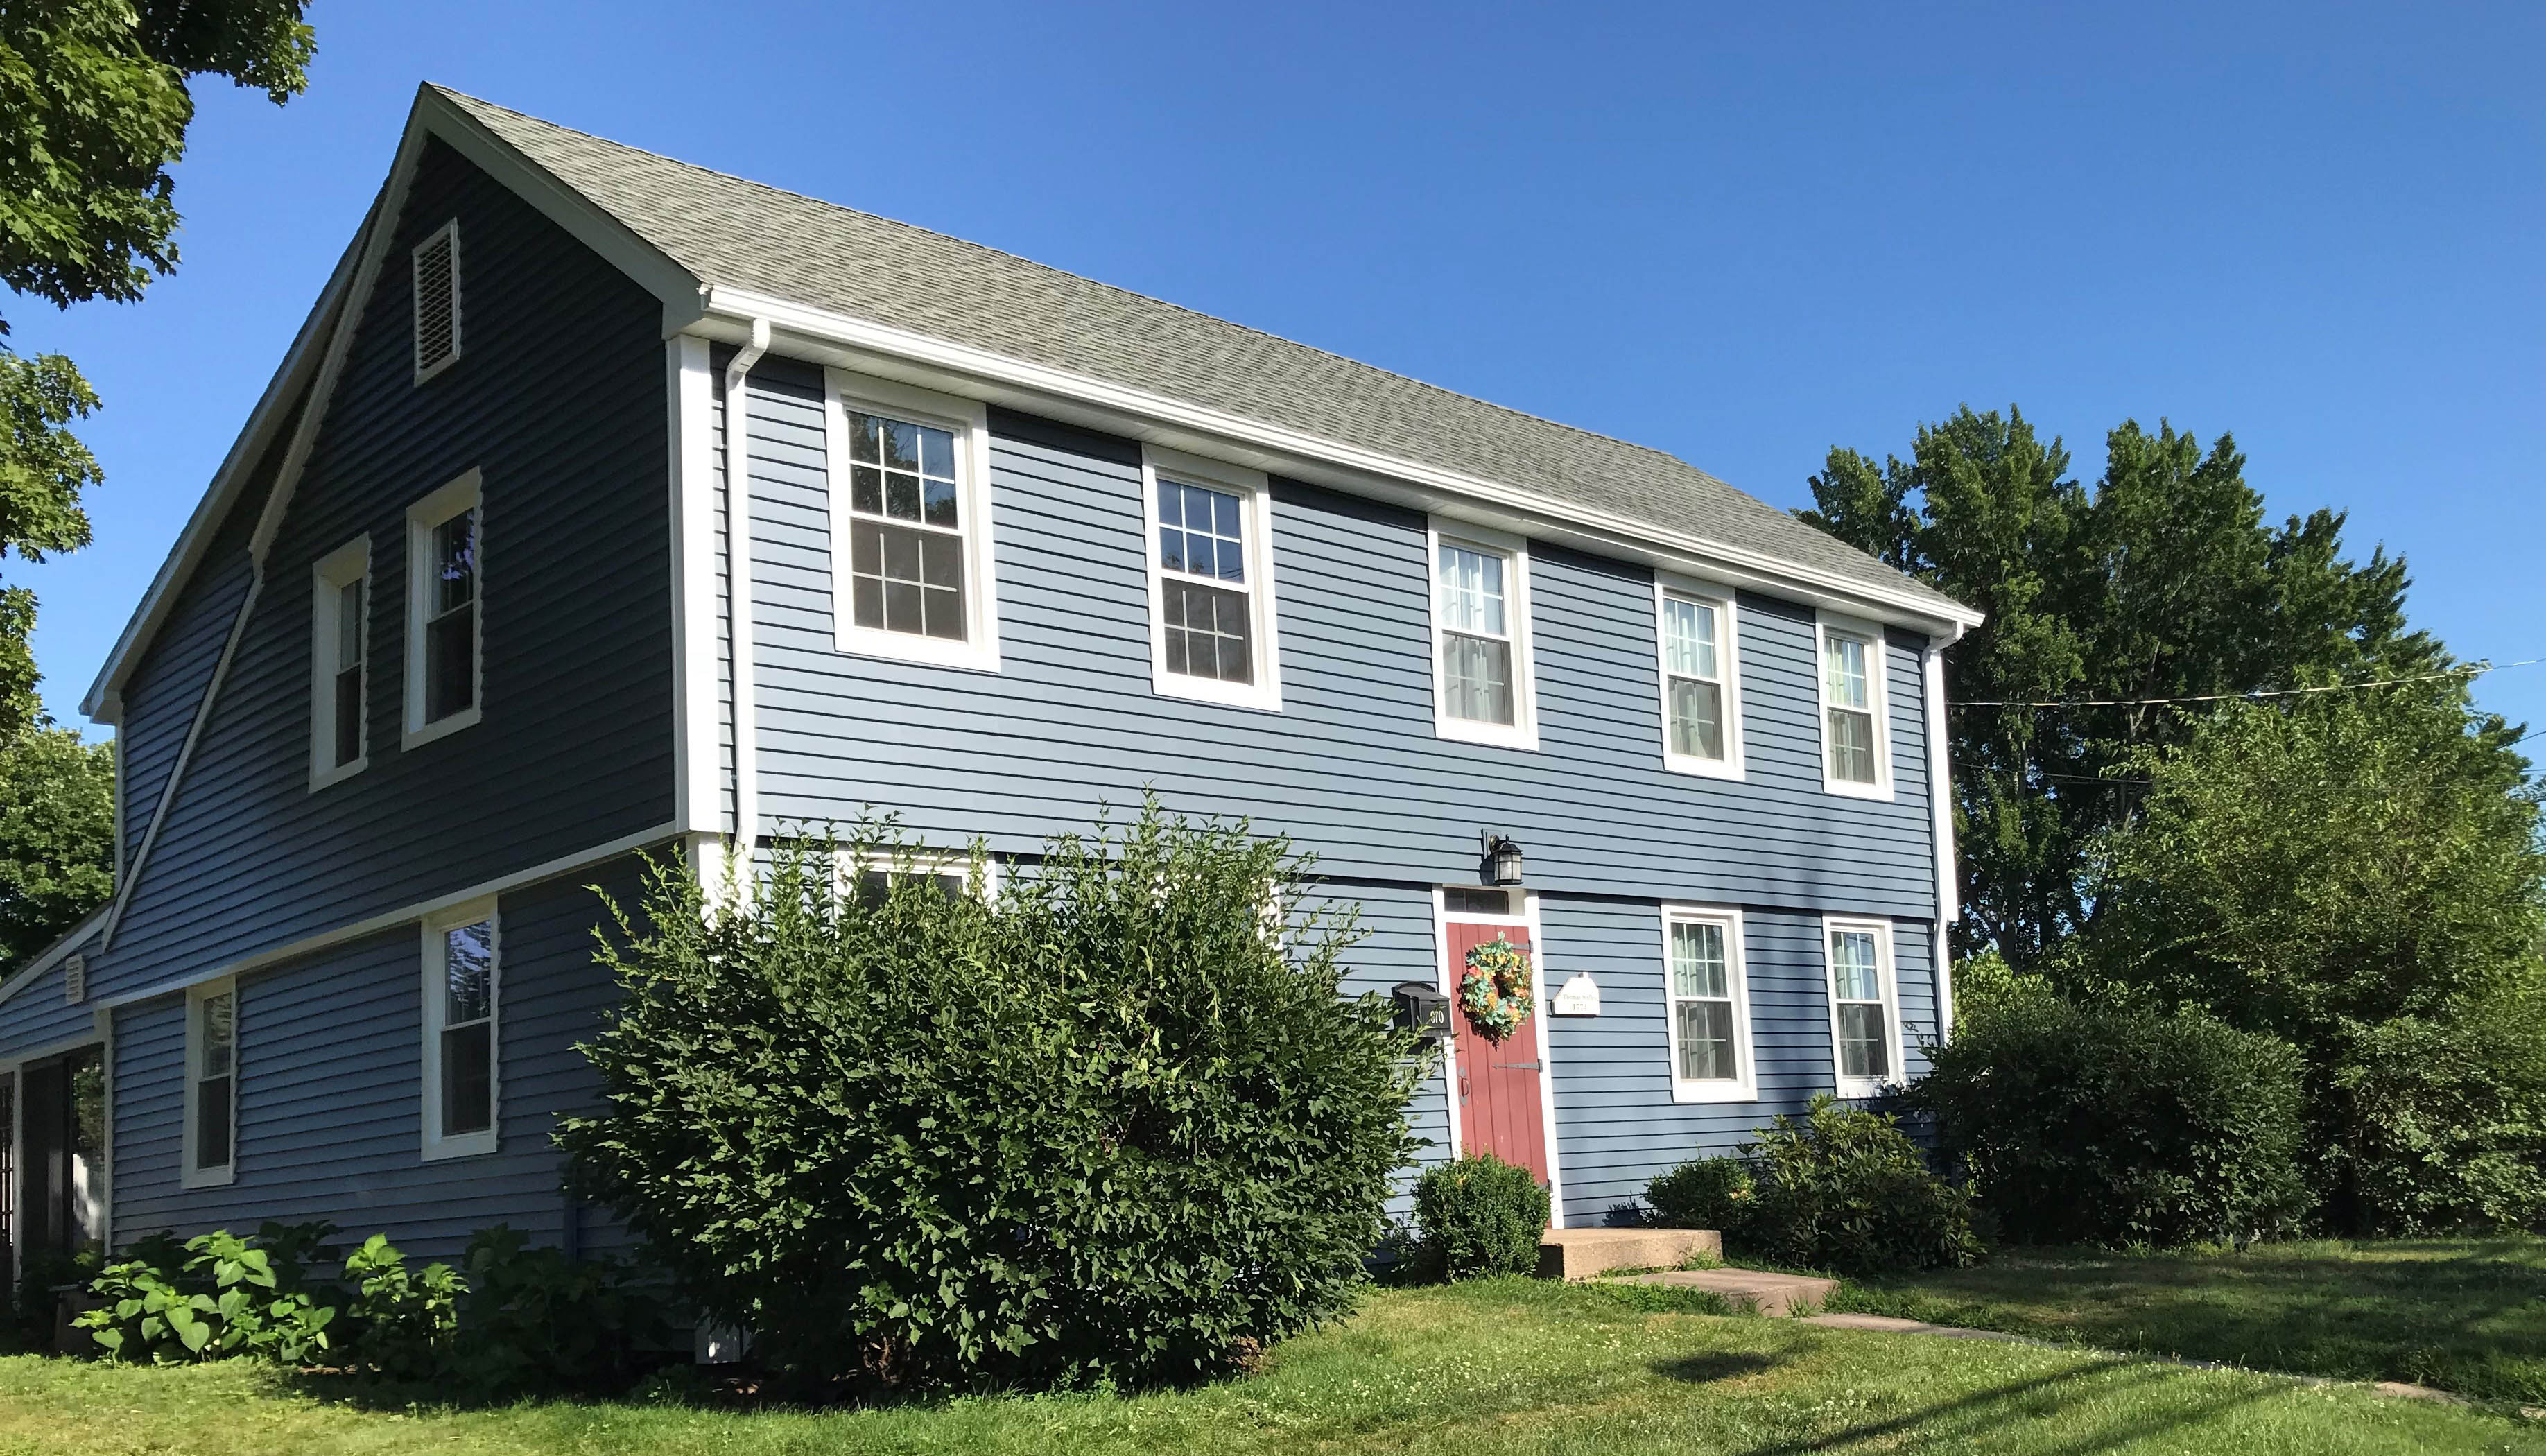 Historic New England saltbox home uses vinyl siding and the results are amazing